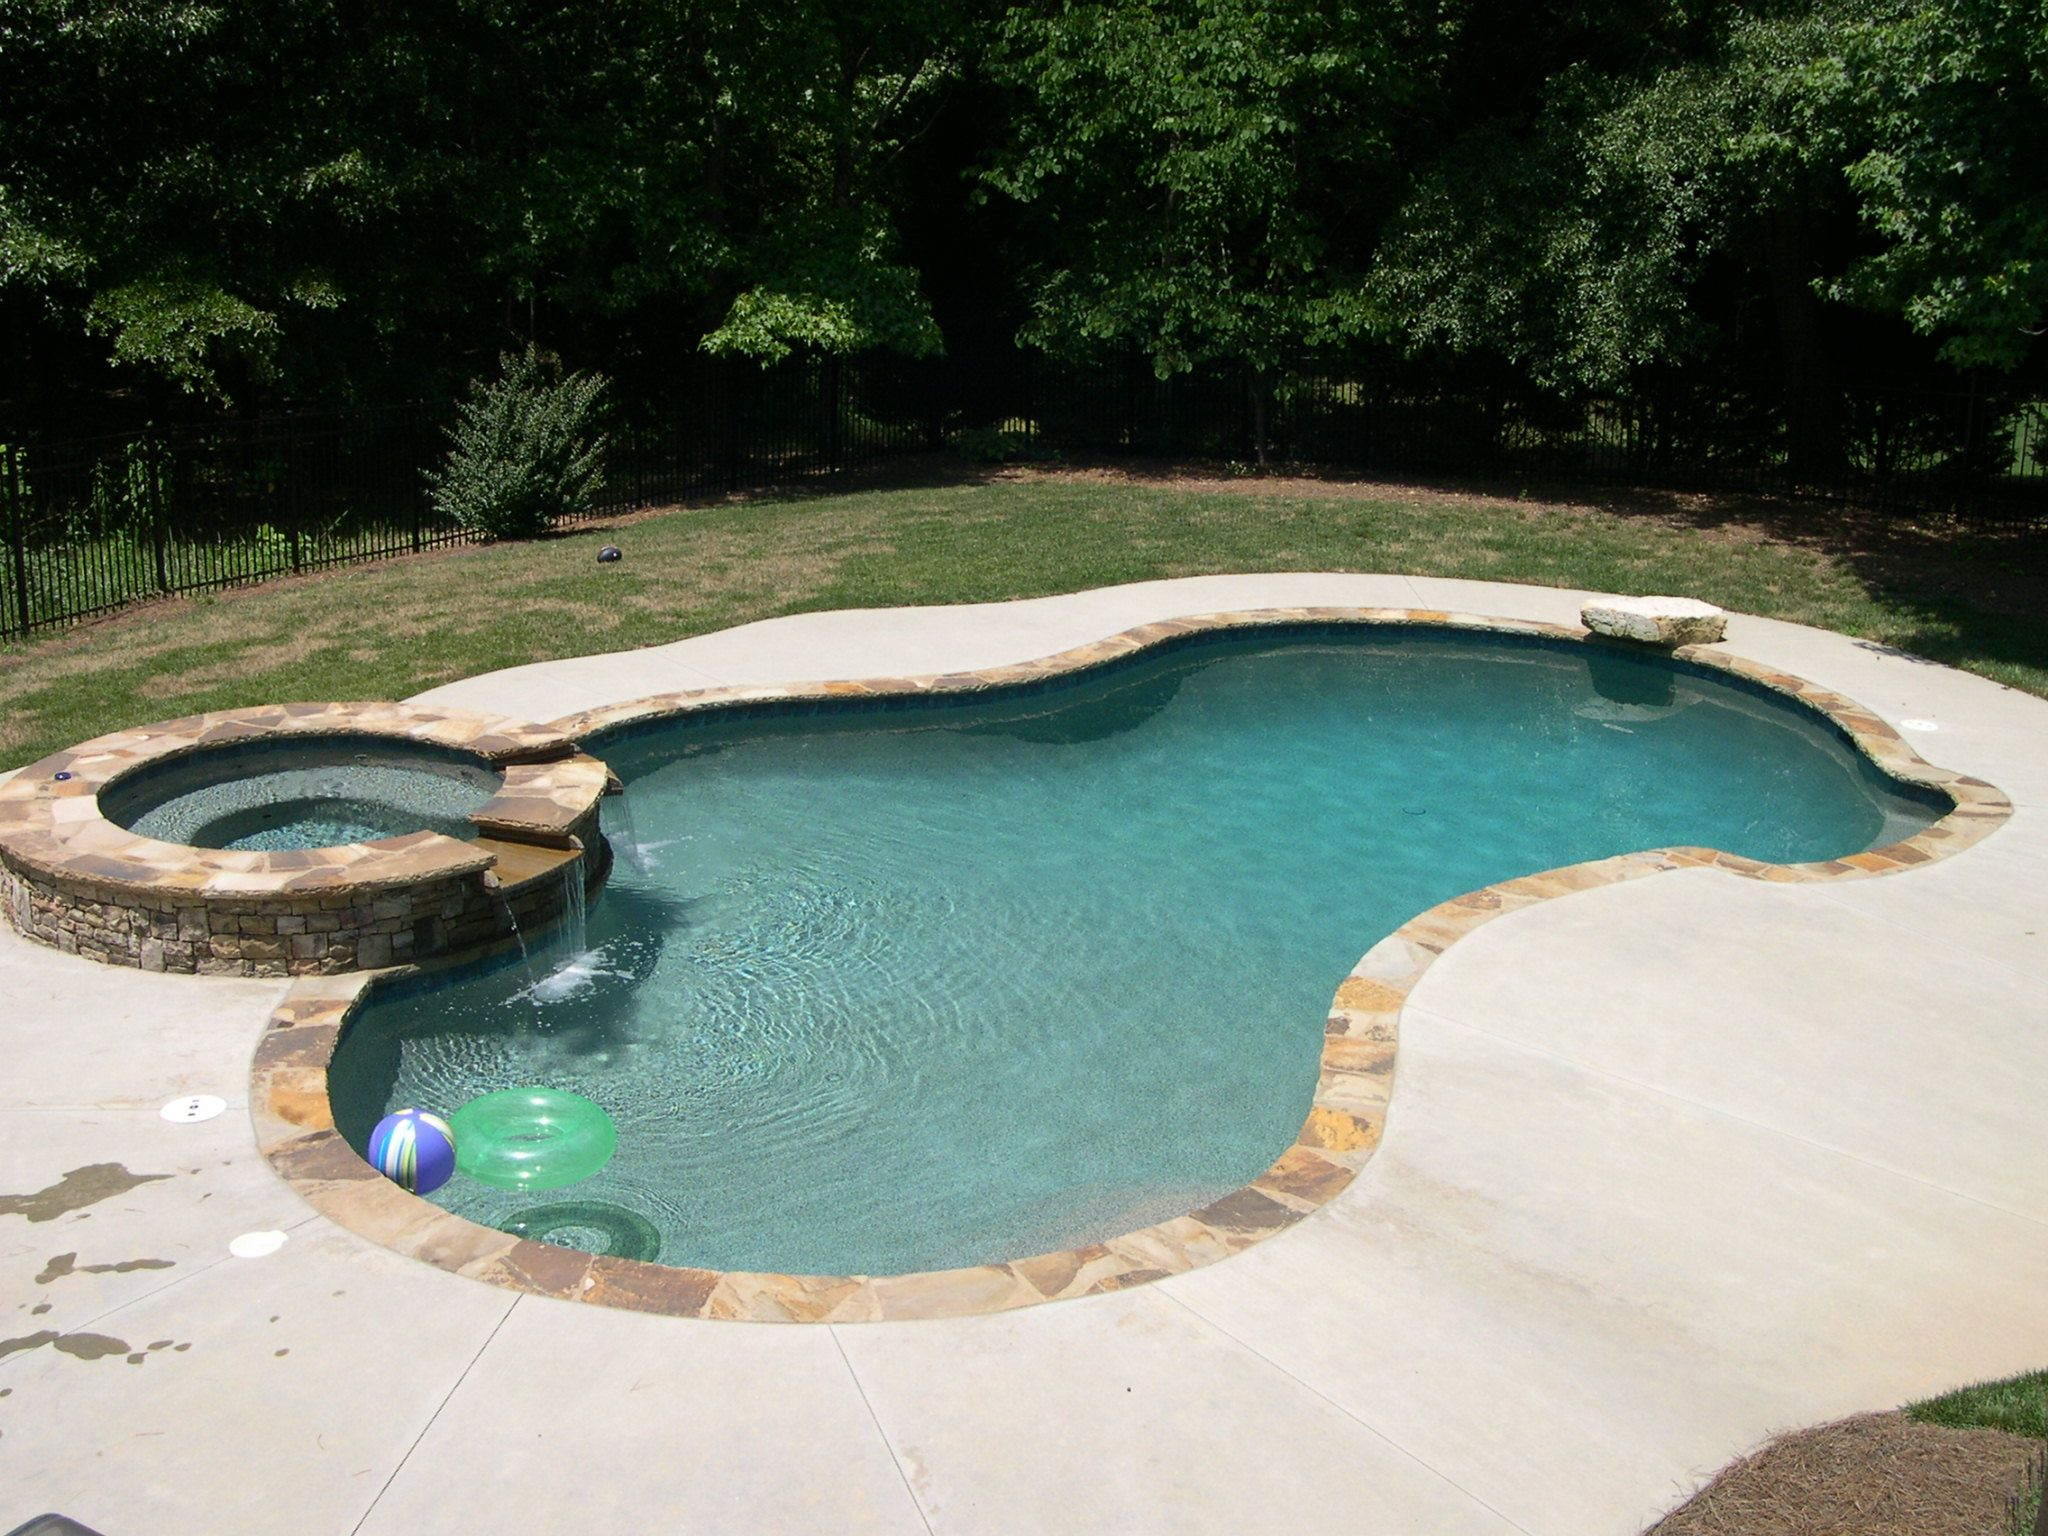 Designs For Small Yards Small Pool Designs Perth And Swimming Pools Small Inground Pool Inground Pool Designs Pools For Small Yards